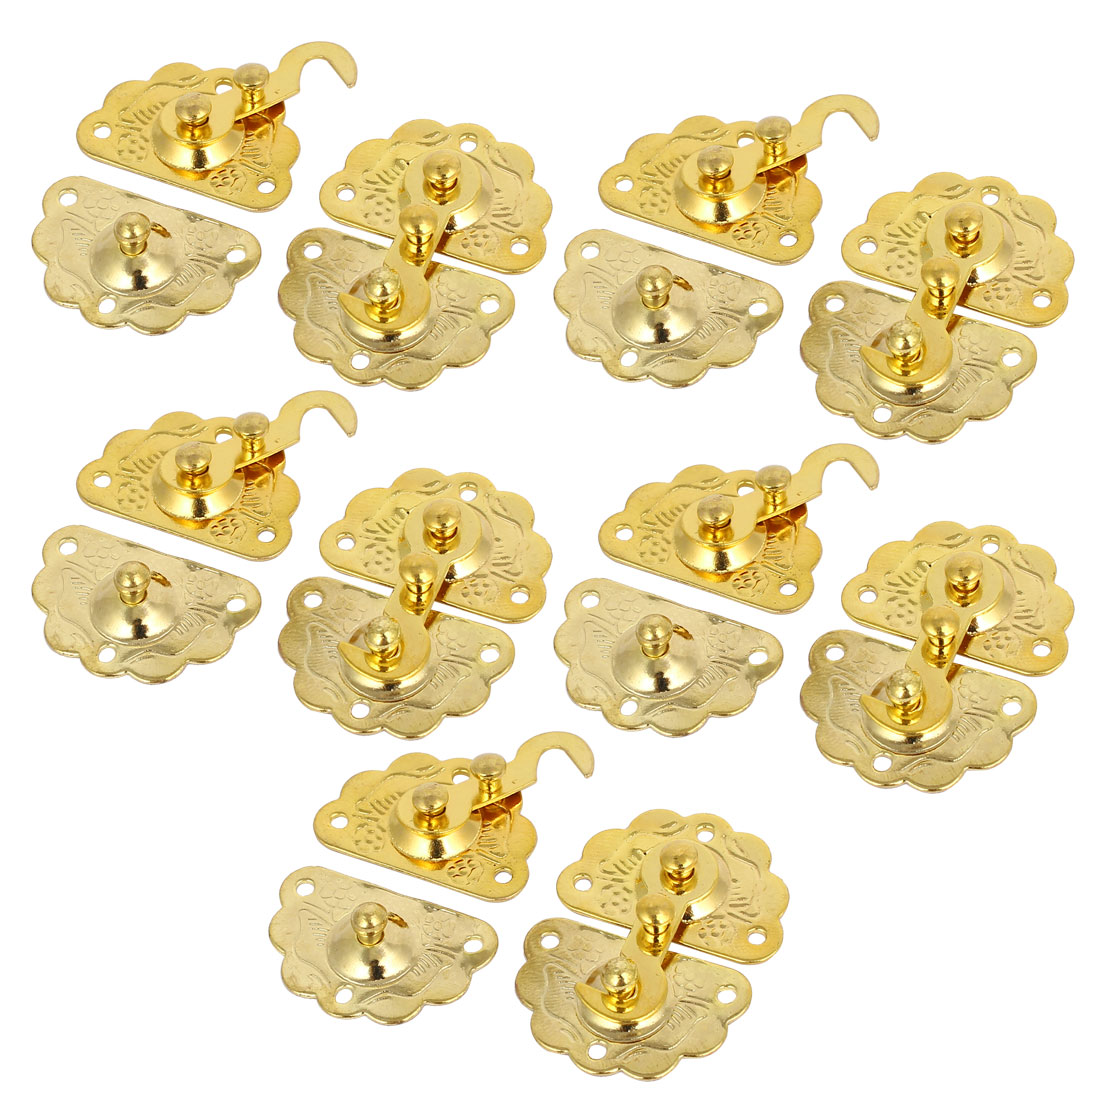 Chest Jewelry Box Case Lock Buckle Latches Toggle Hasp Gold Tone 10PCS